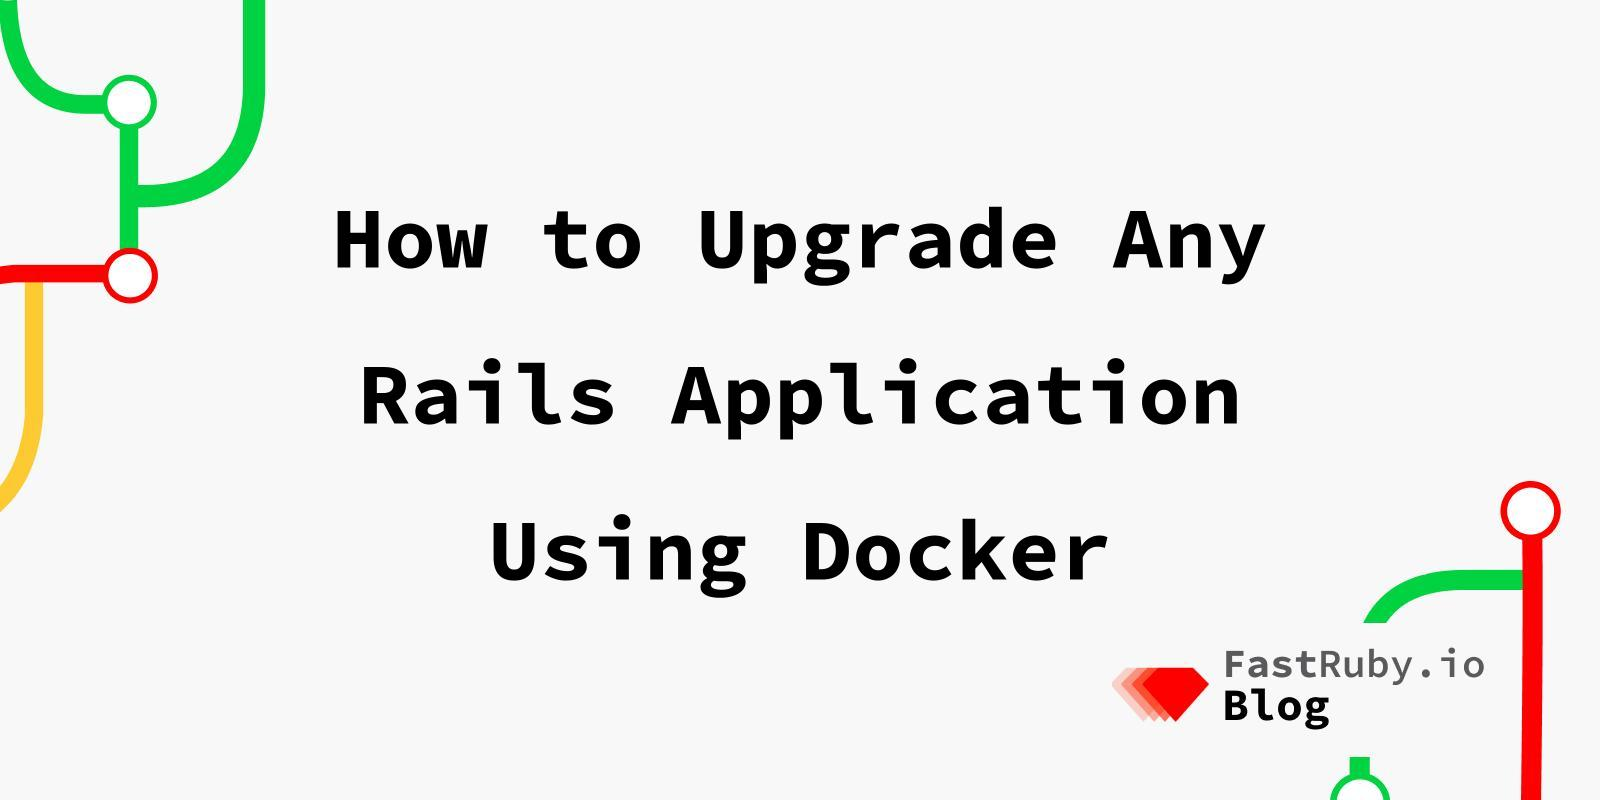 How to Upgrade Any Rails Application Using Docker